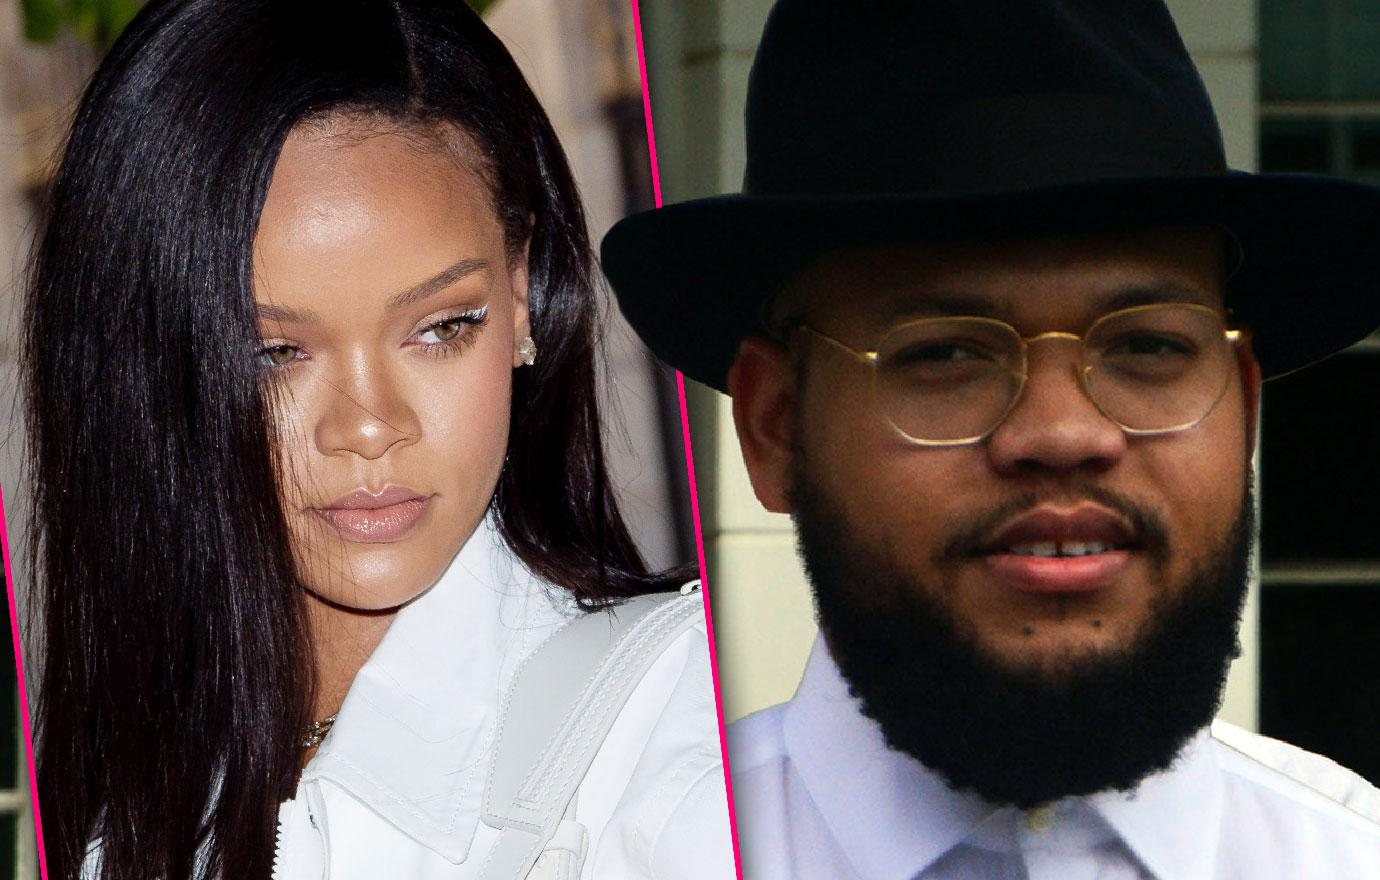 Rihanna's Brother In Court After Alleged Assault Arrest